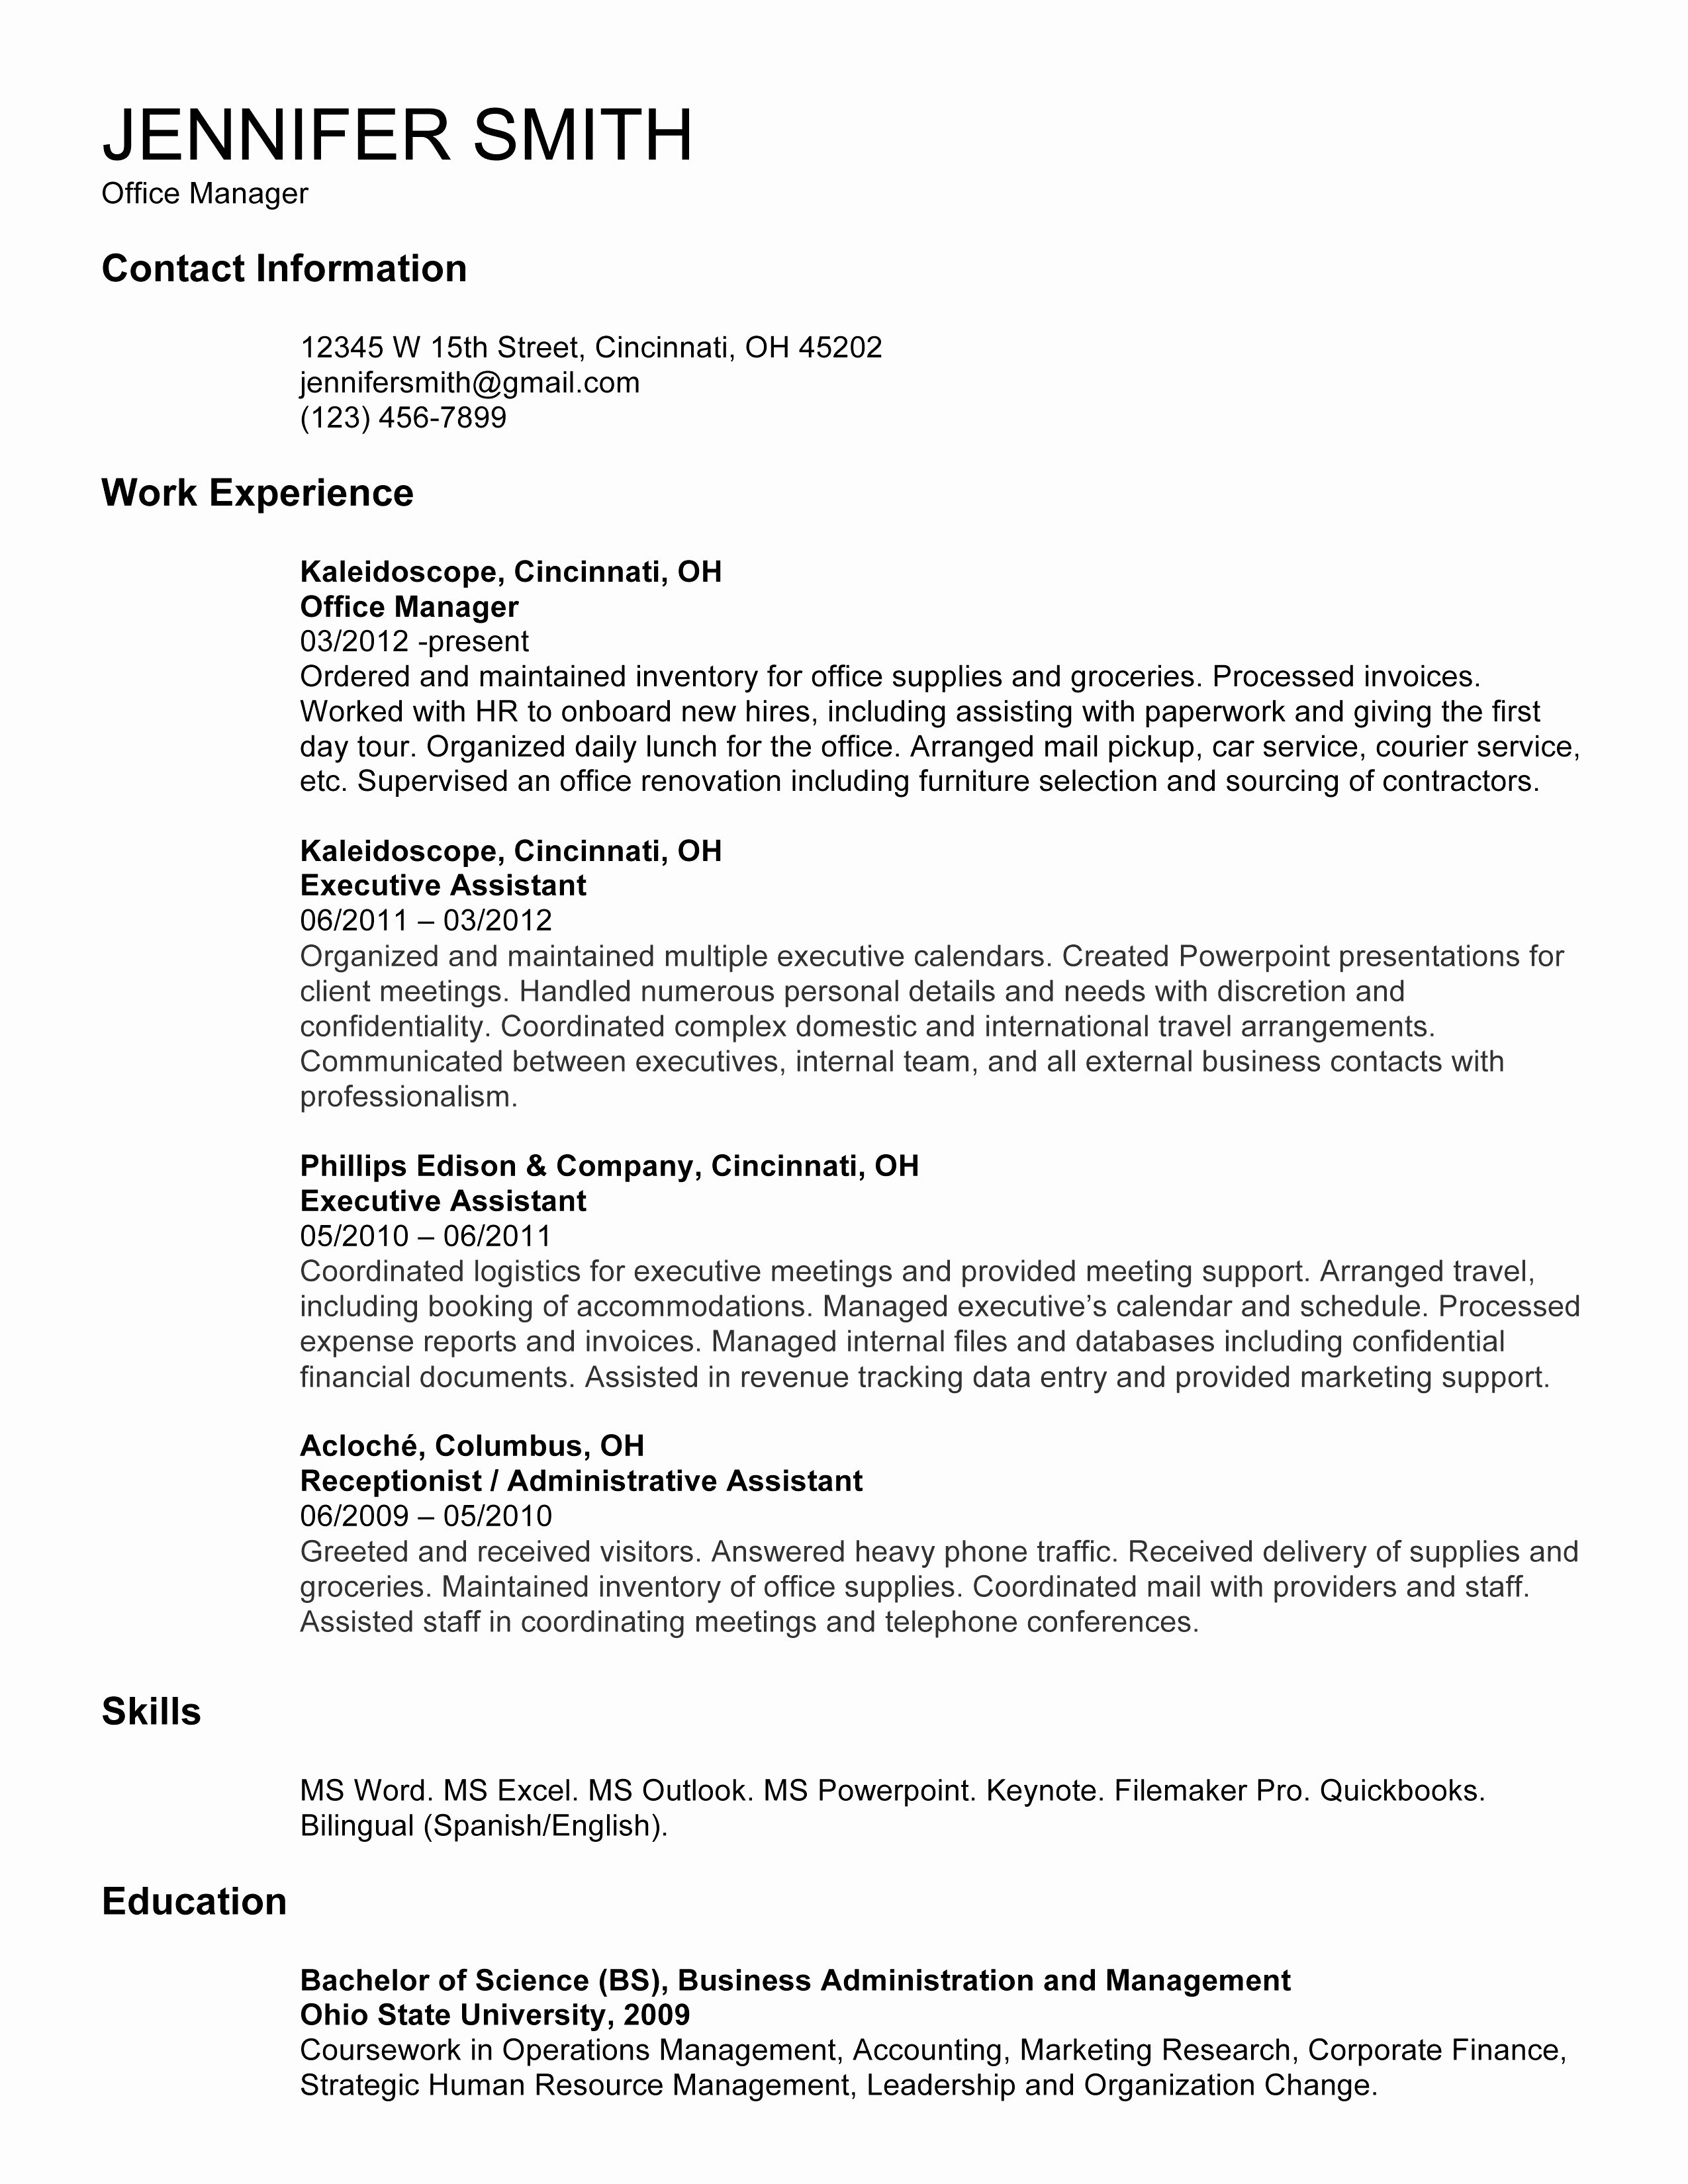 secret santa letter template Collection-Secret Santa Email Template Sample Executive Resume Elegant American Resume Sample New Student Resume 0d Wallpapers 42 Awesome 9-f